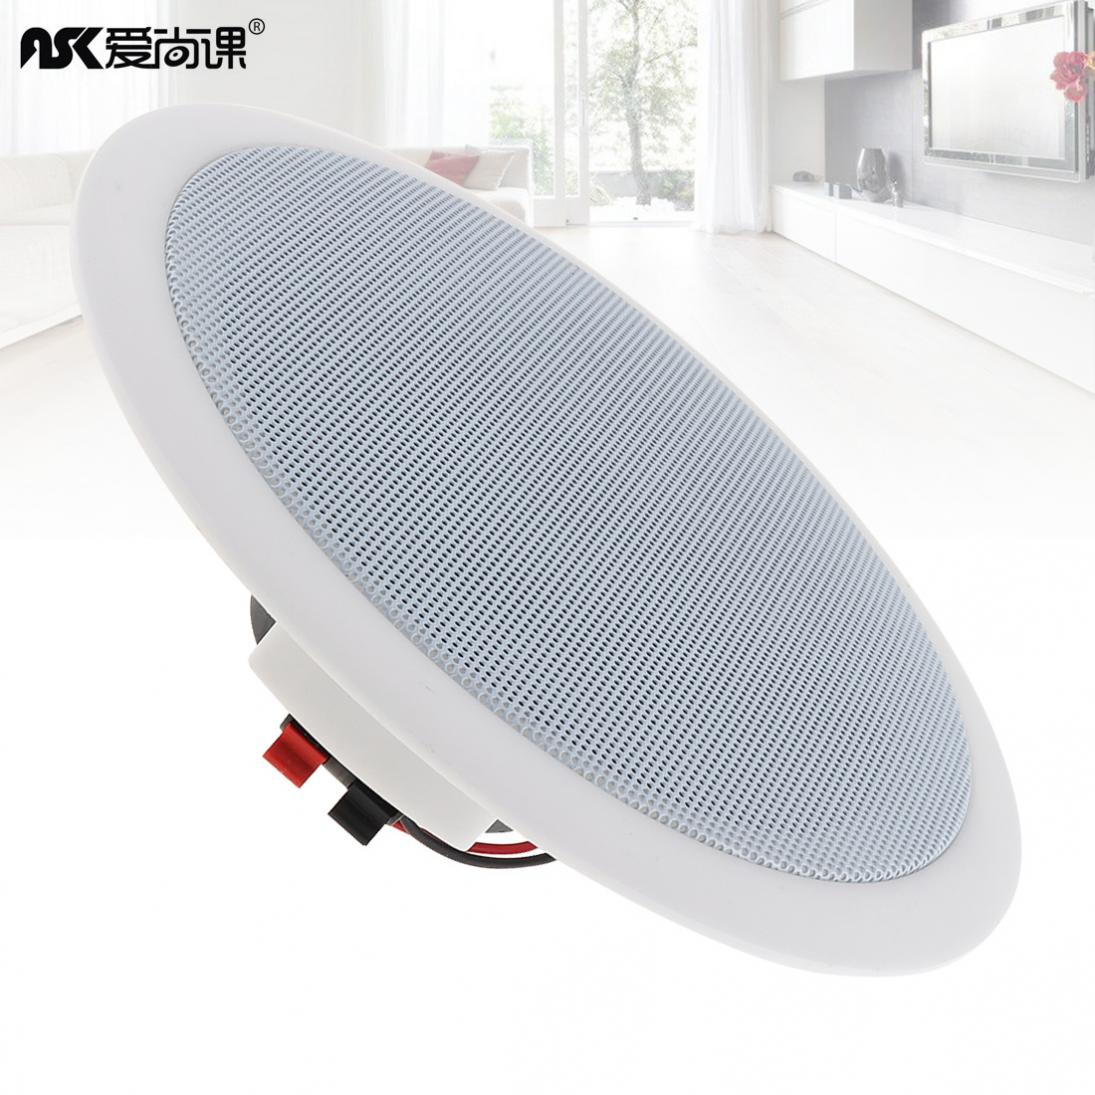 ASK-515 5 Inch 5W Ceiling Speaker Public Broadcast Background Music Speaker for Home / Supermarket / Restaurant